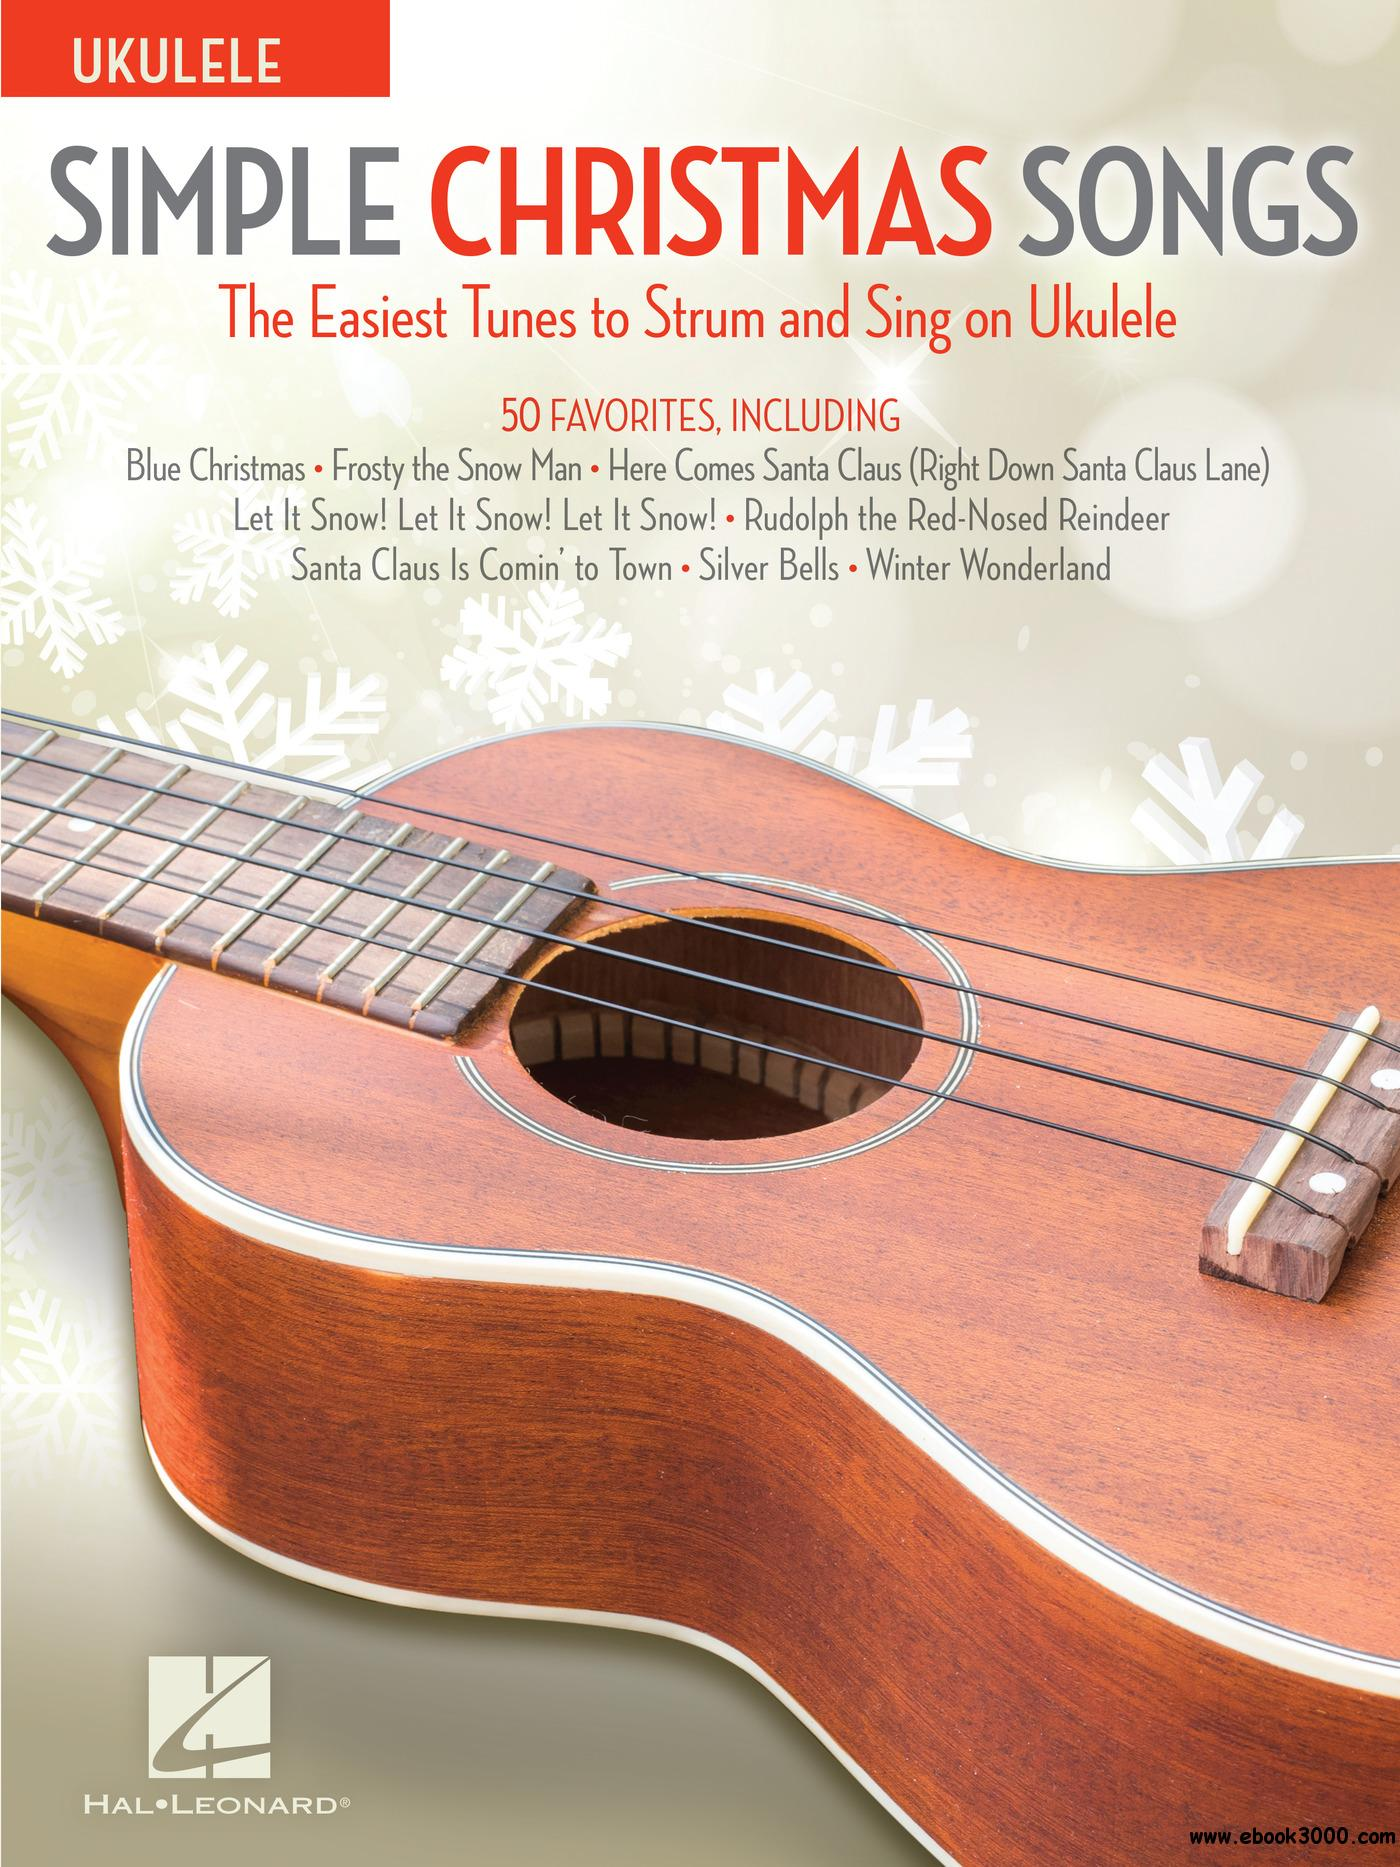 Simple Christmas Songs: The Easiest Tunes to Strum & Sing on Ukulele